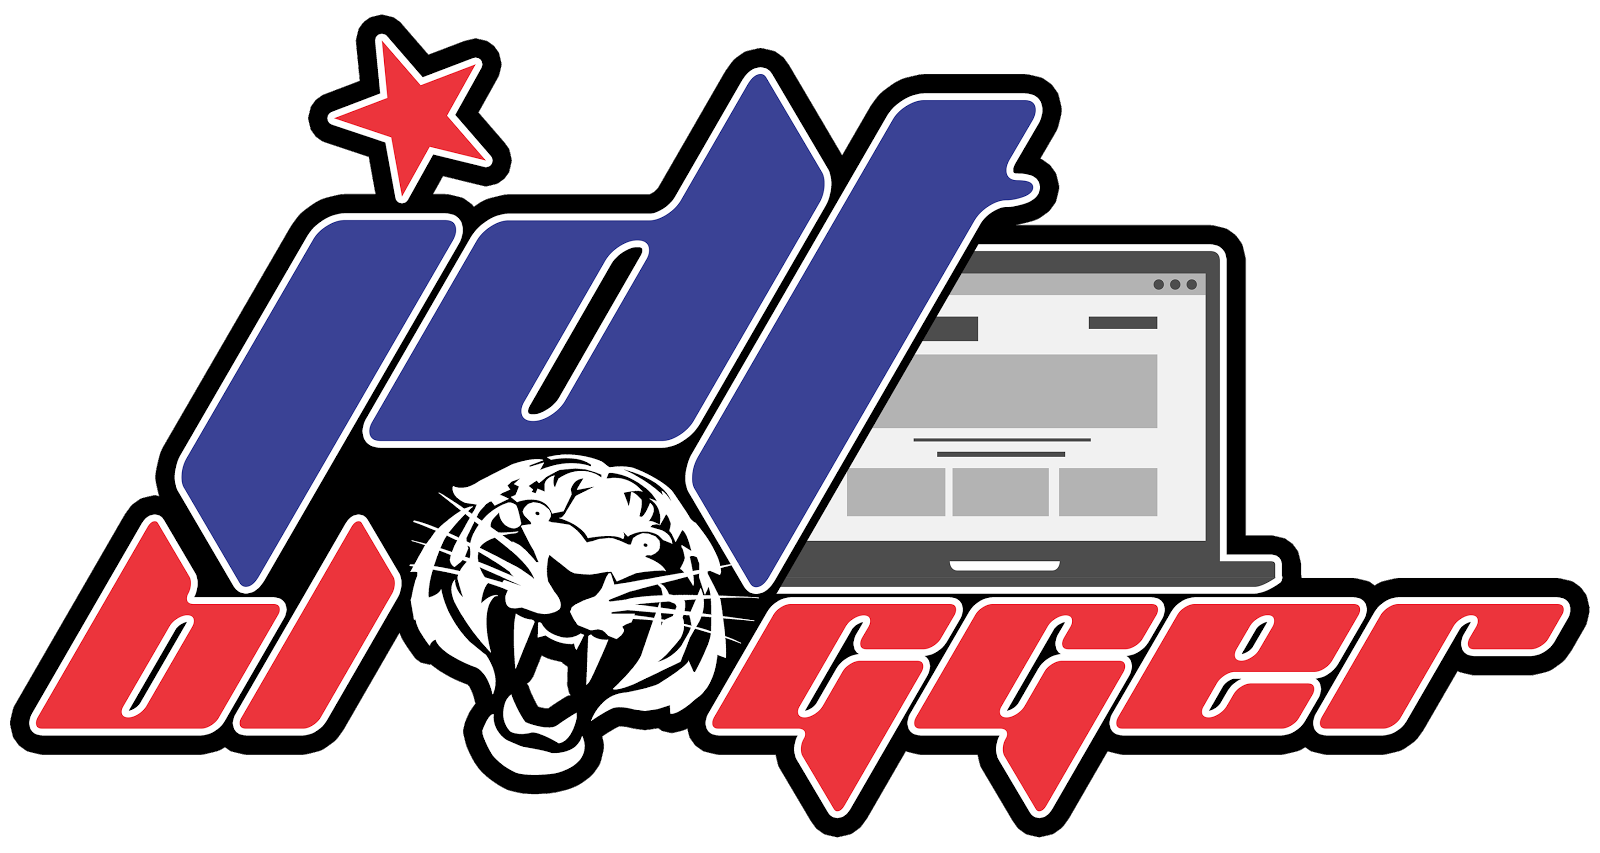 Support JDT Blogger